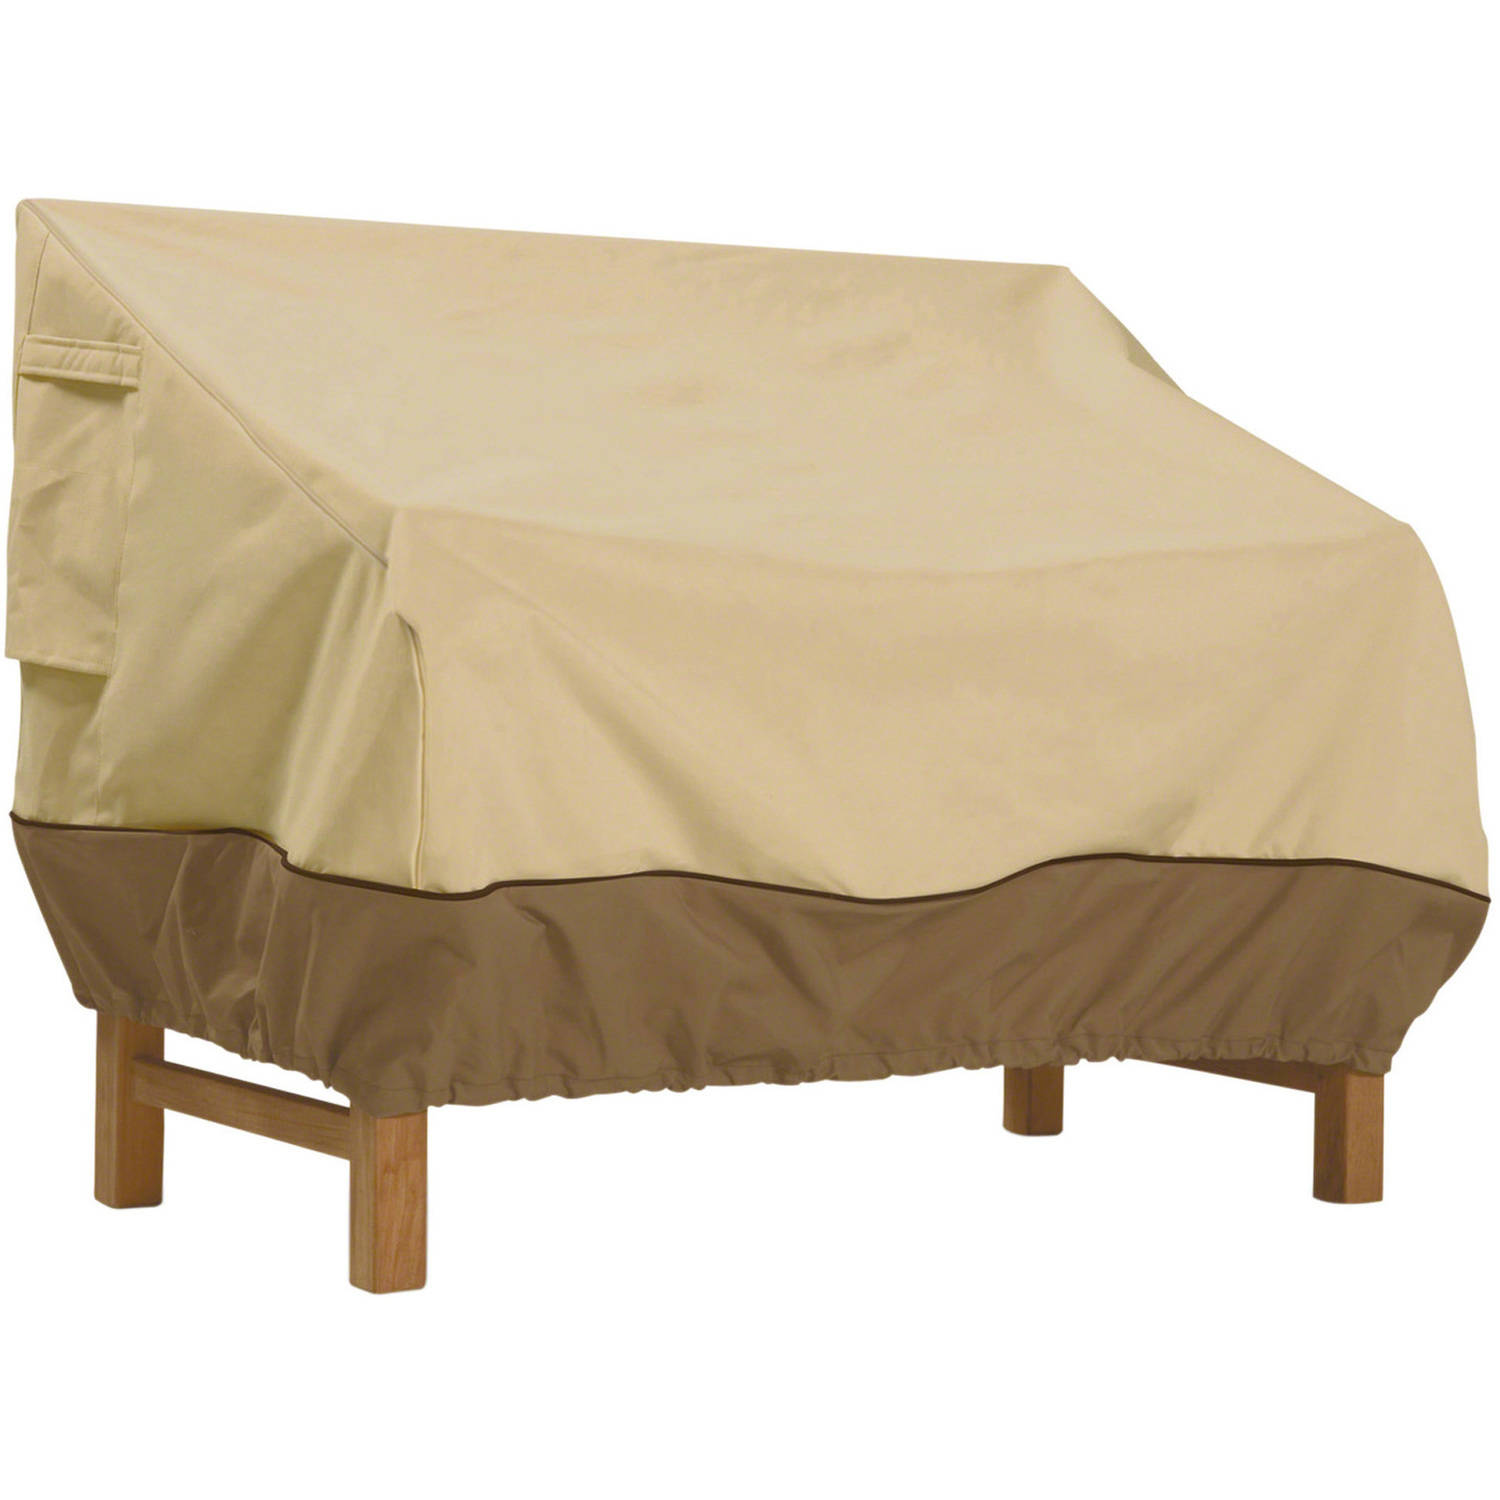 """Classic Accessories Veranda Patio Bench and Loveseat Furniture Storage Cover, Small, fits up to 58""""L x 32.5""""W"""